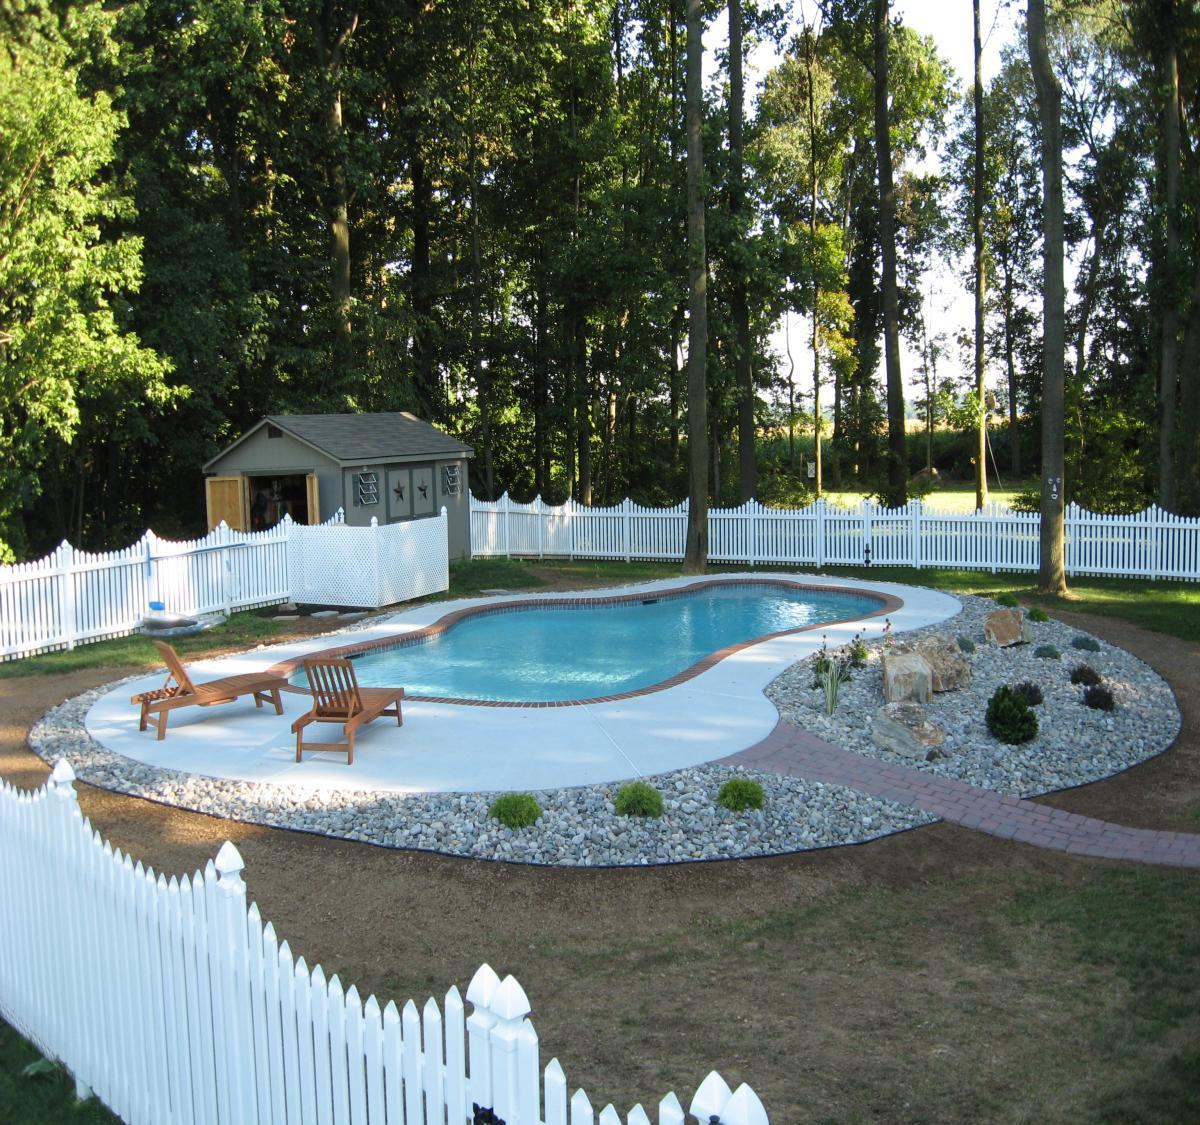 Low maintenance landscaping ideas around pool design and ideas - Pool landscape design ideas ...